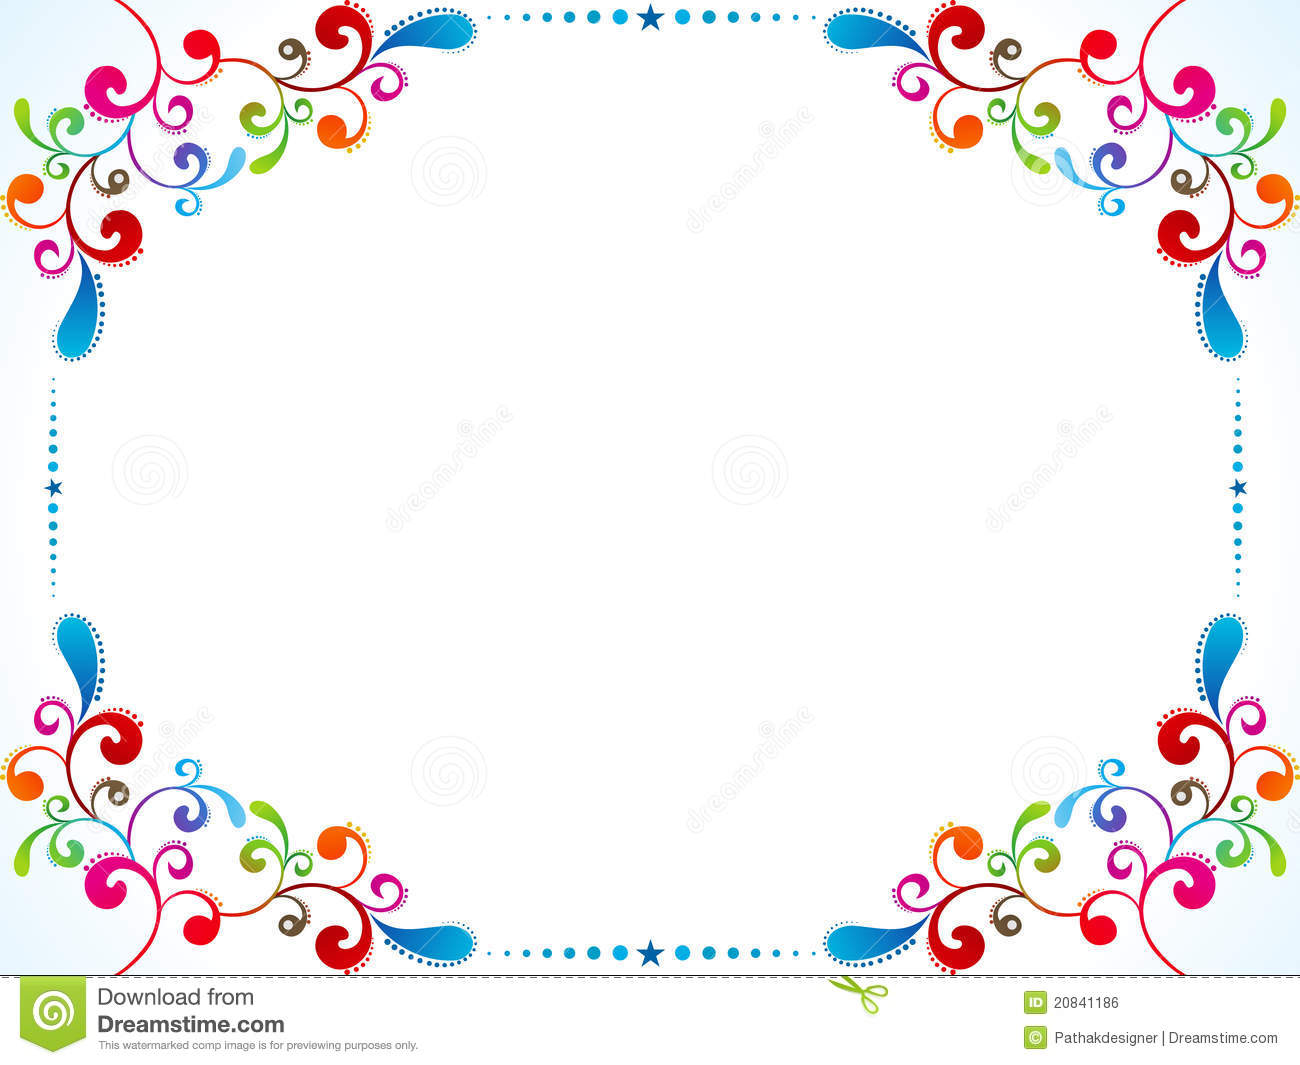 Abstract Colorful Floral Border Royalty Free Stock Image ...